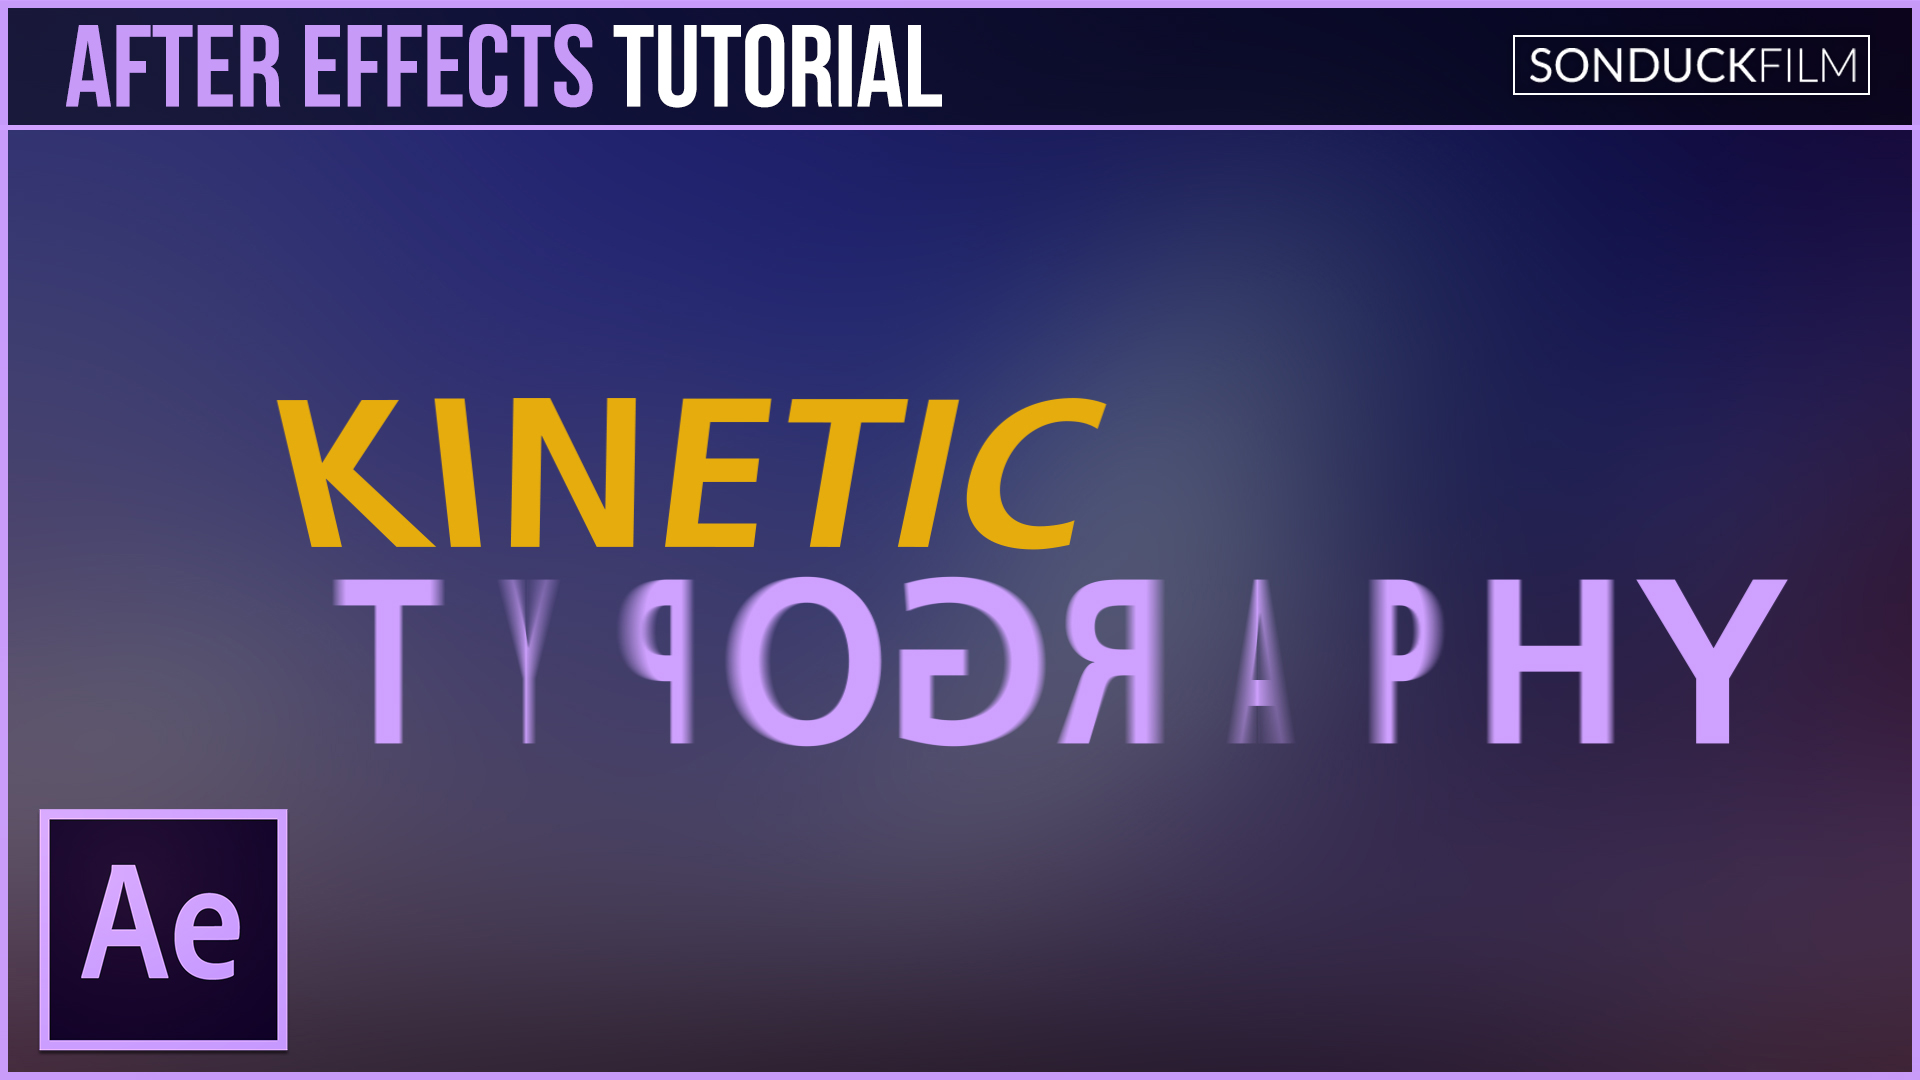 after effects tutorial kinetic typography motion graphics sonduckfilm